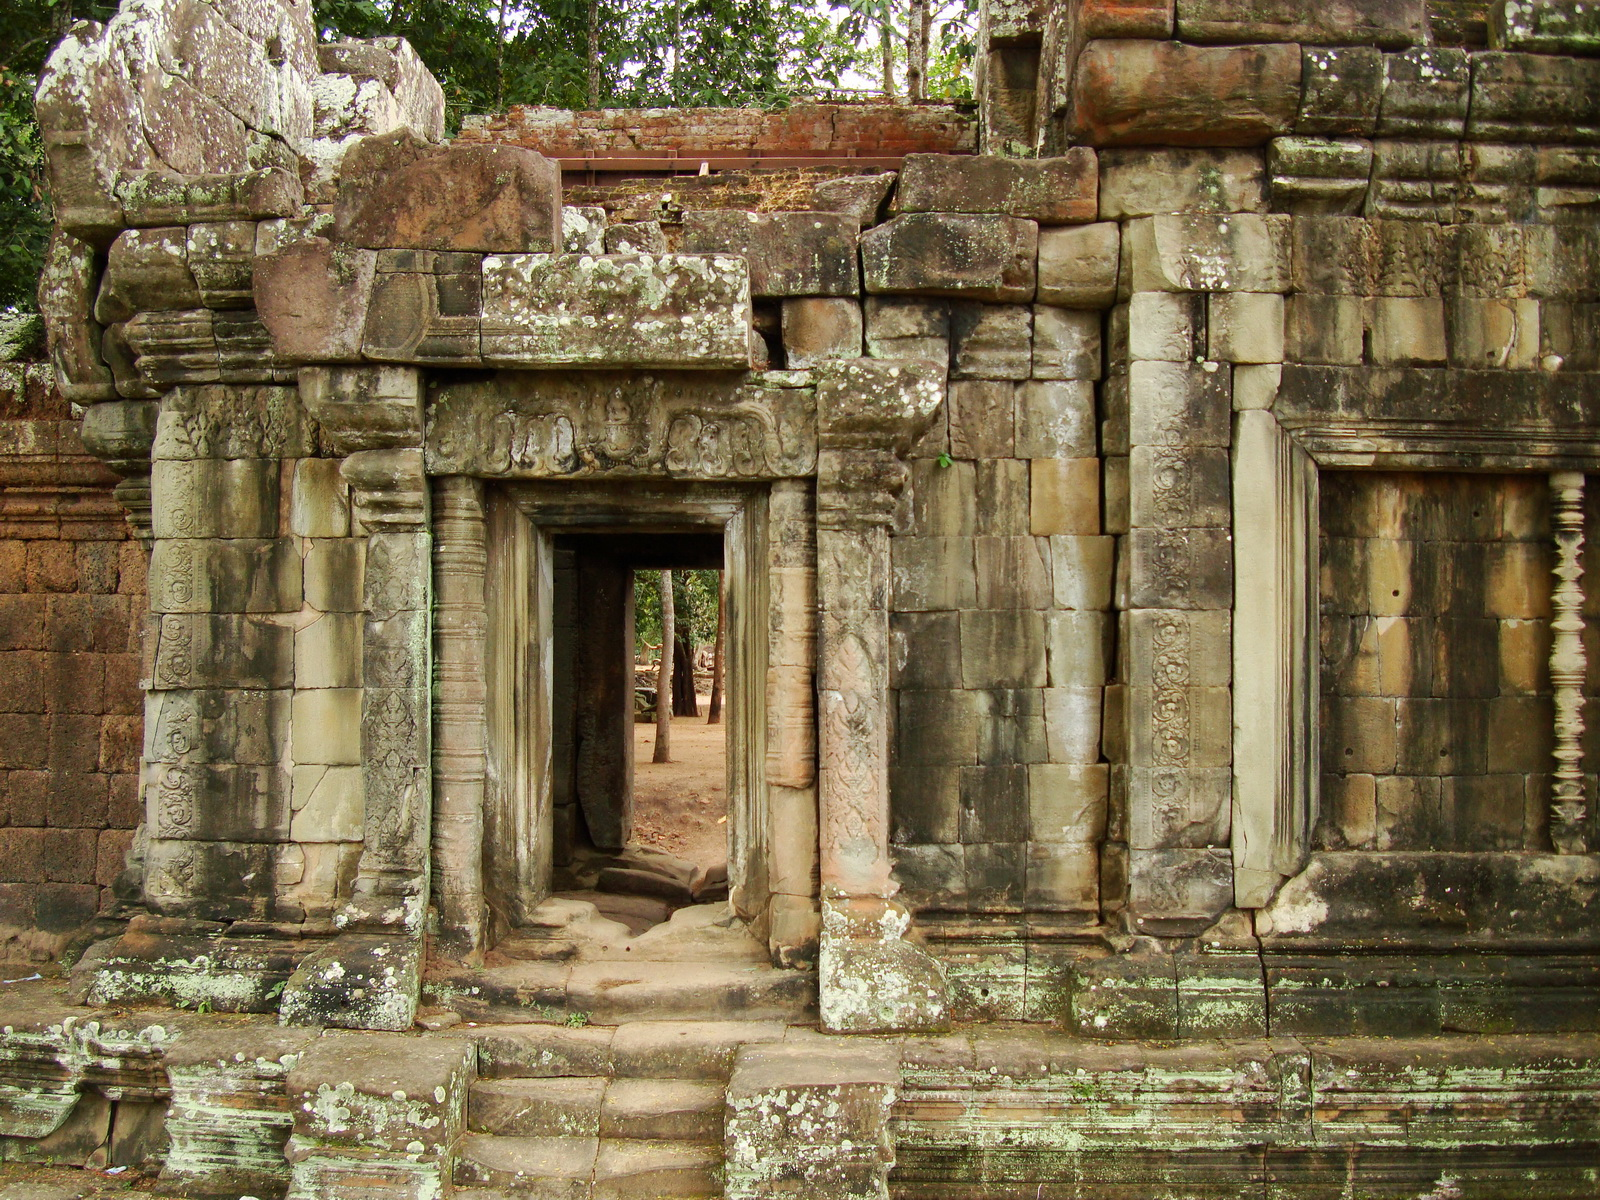 Terrace of the Elephants inner gate Angkor Thom 10